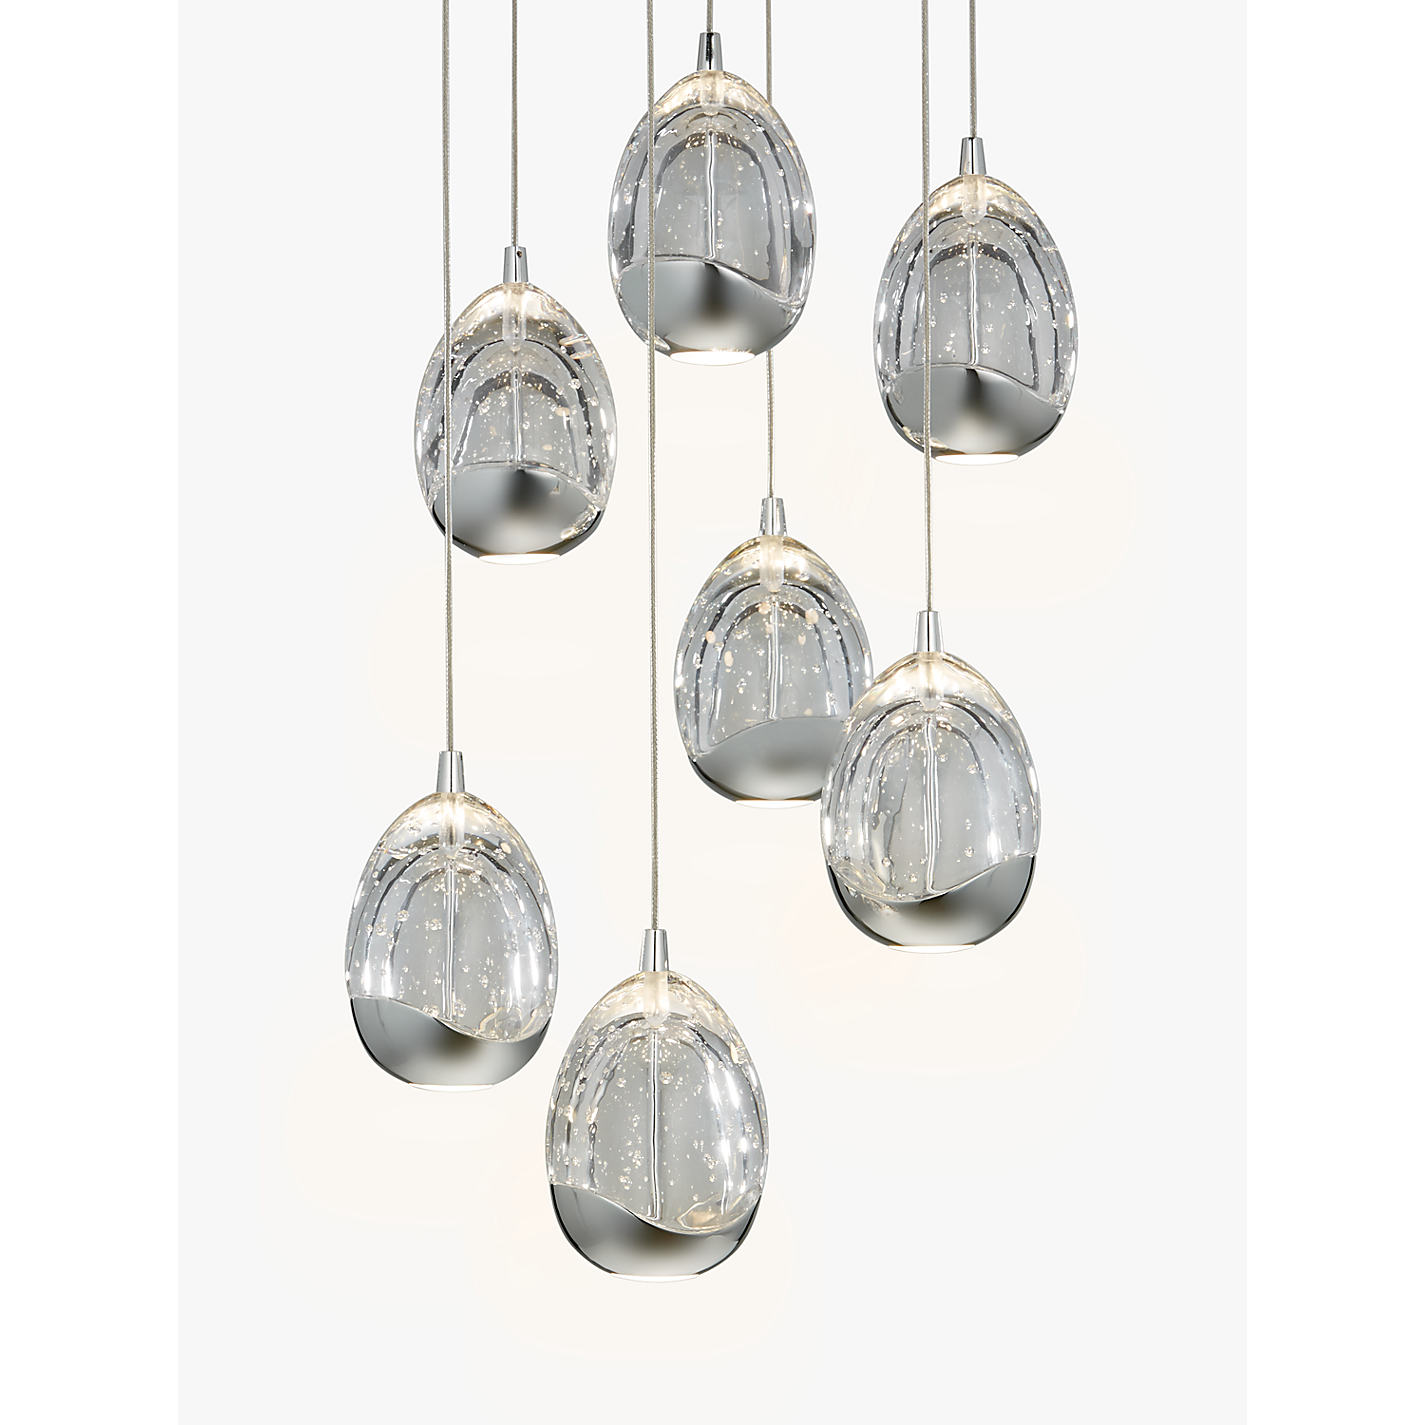 Buy john lewis droplet led pendant ceiling light 7 light chrome buy john lewis droplet led pendant ceiling light 7 light chrome online at johnlewis aloadofball Gallery